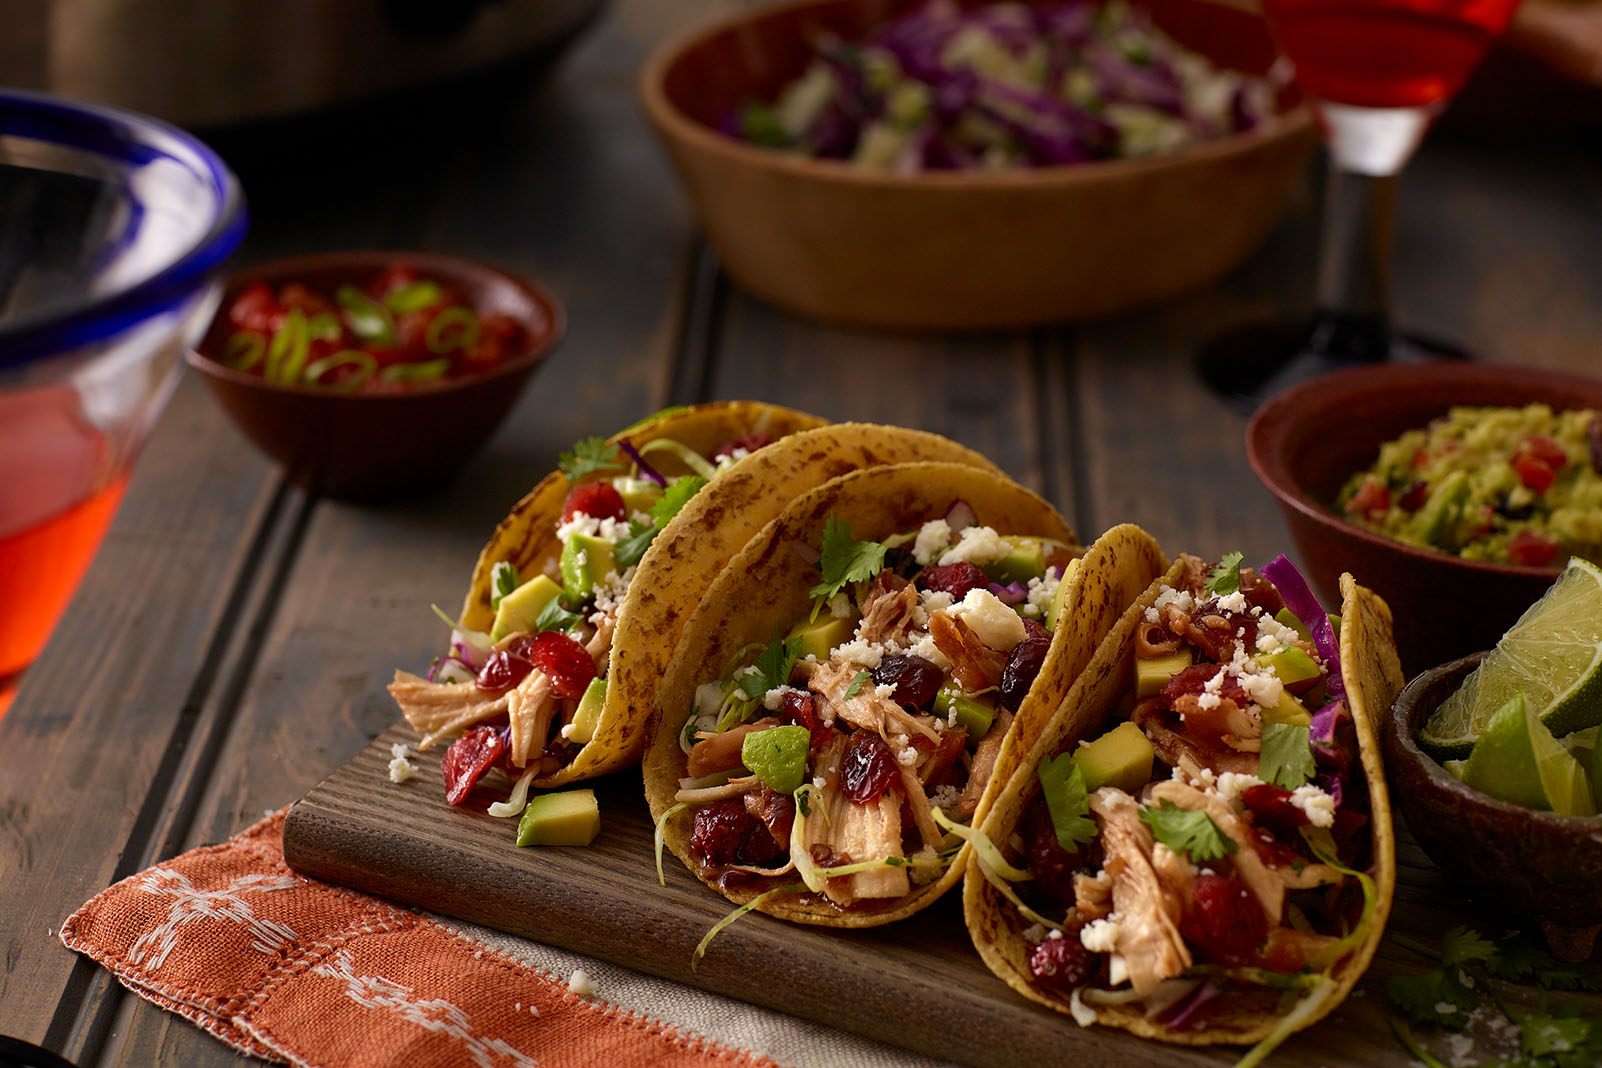 Cranberry Chipotle Chicken Tacos